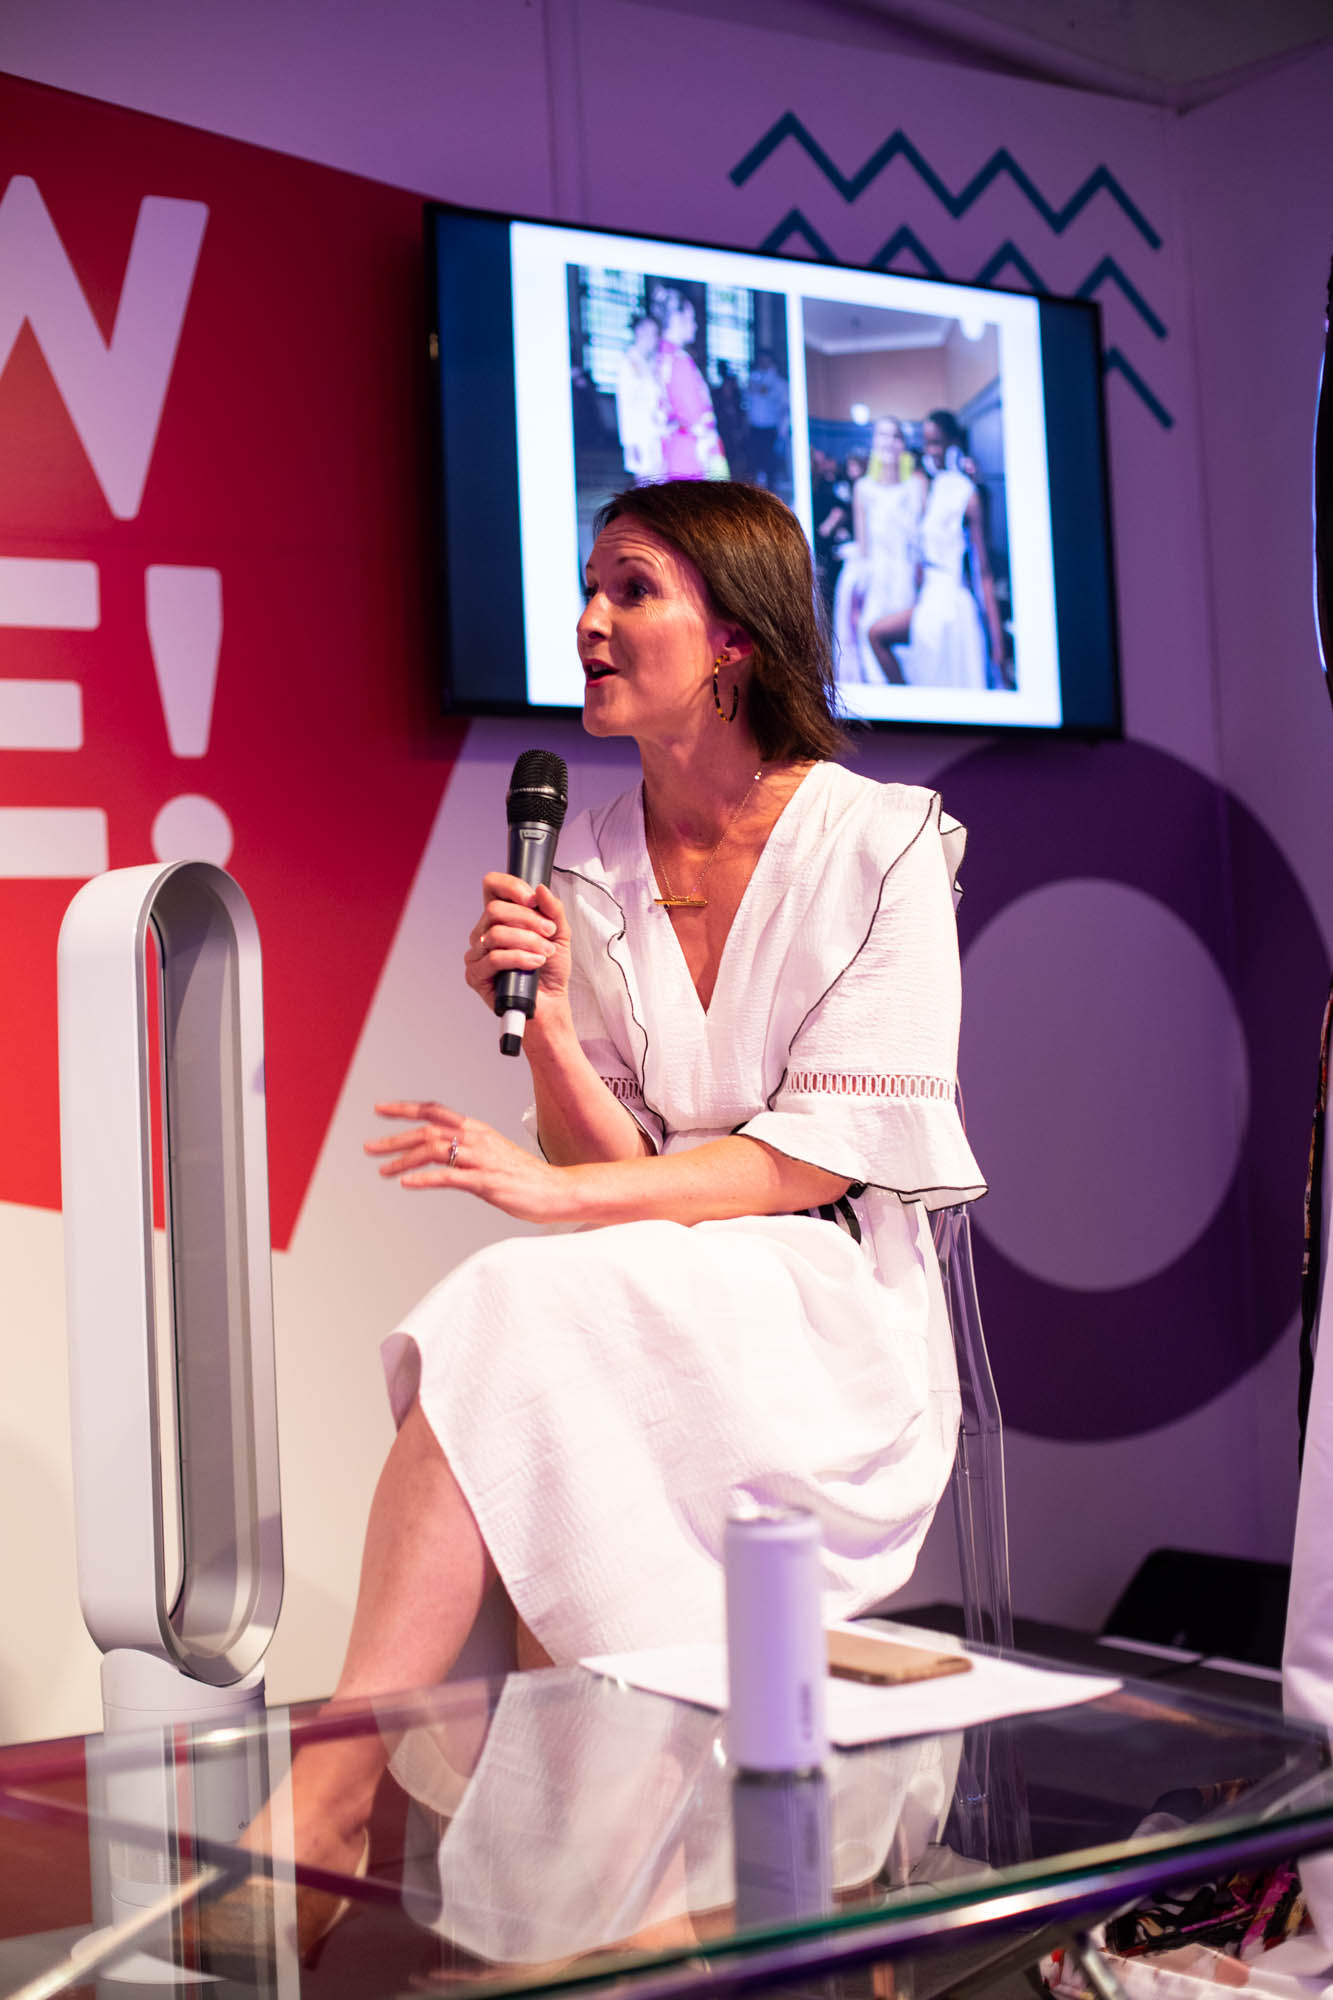 Claire Tagg Talk  050618 Imageby Lily.jpg